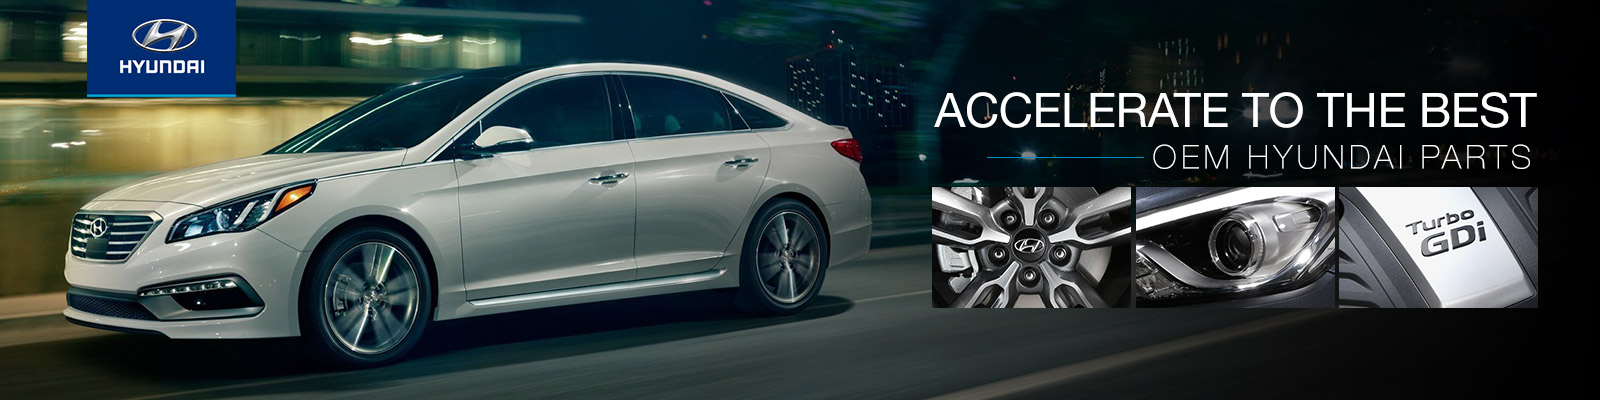 Accelerate to the best - OEM Hyundai Parts